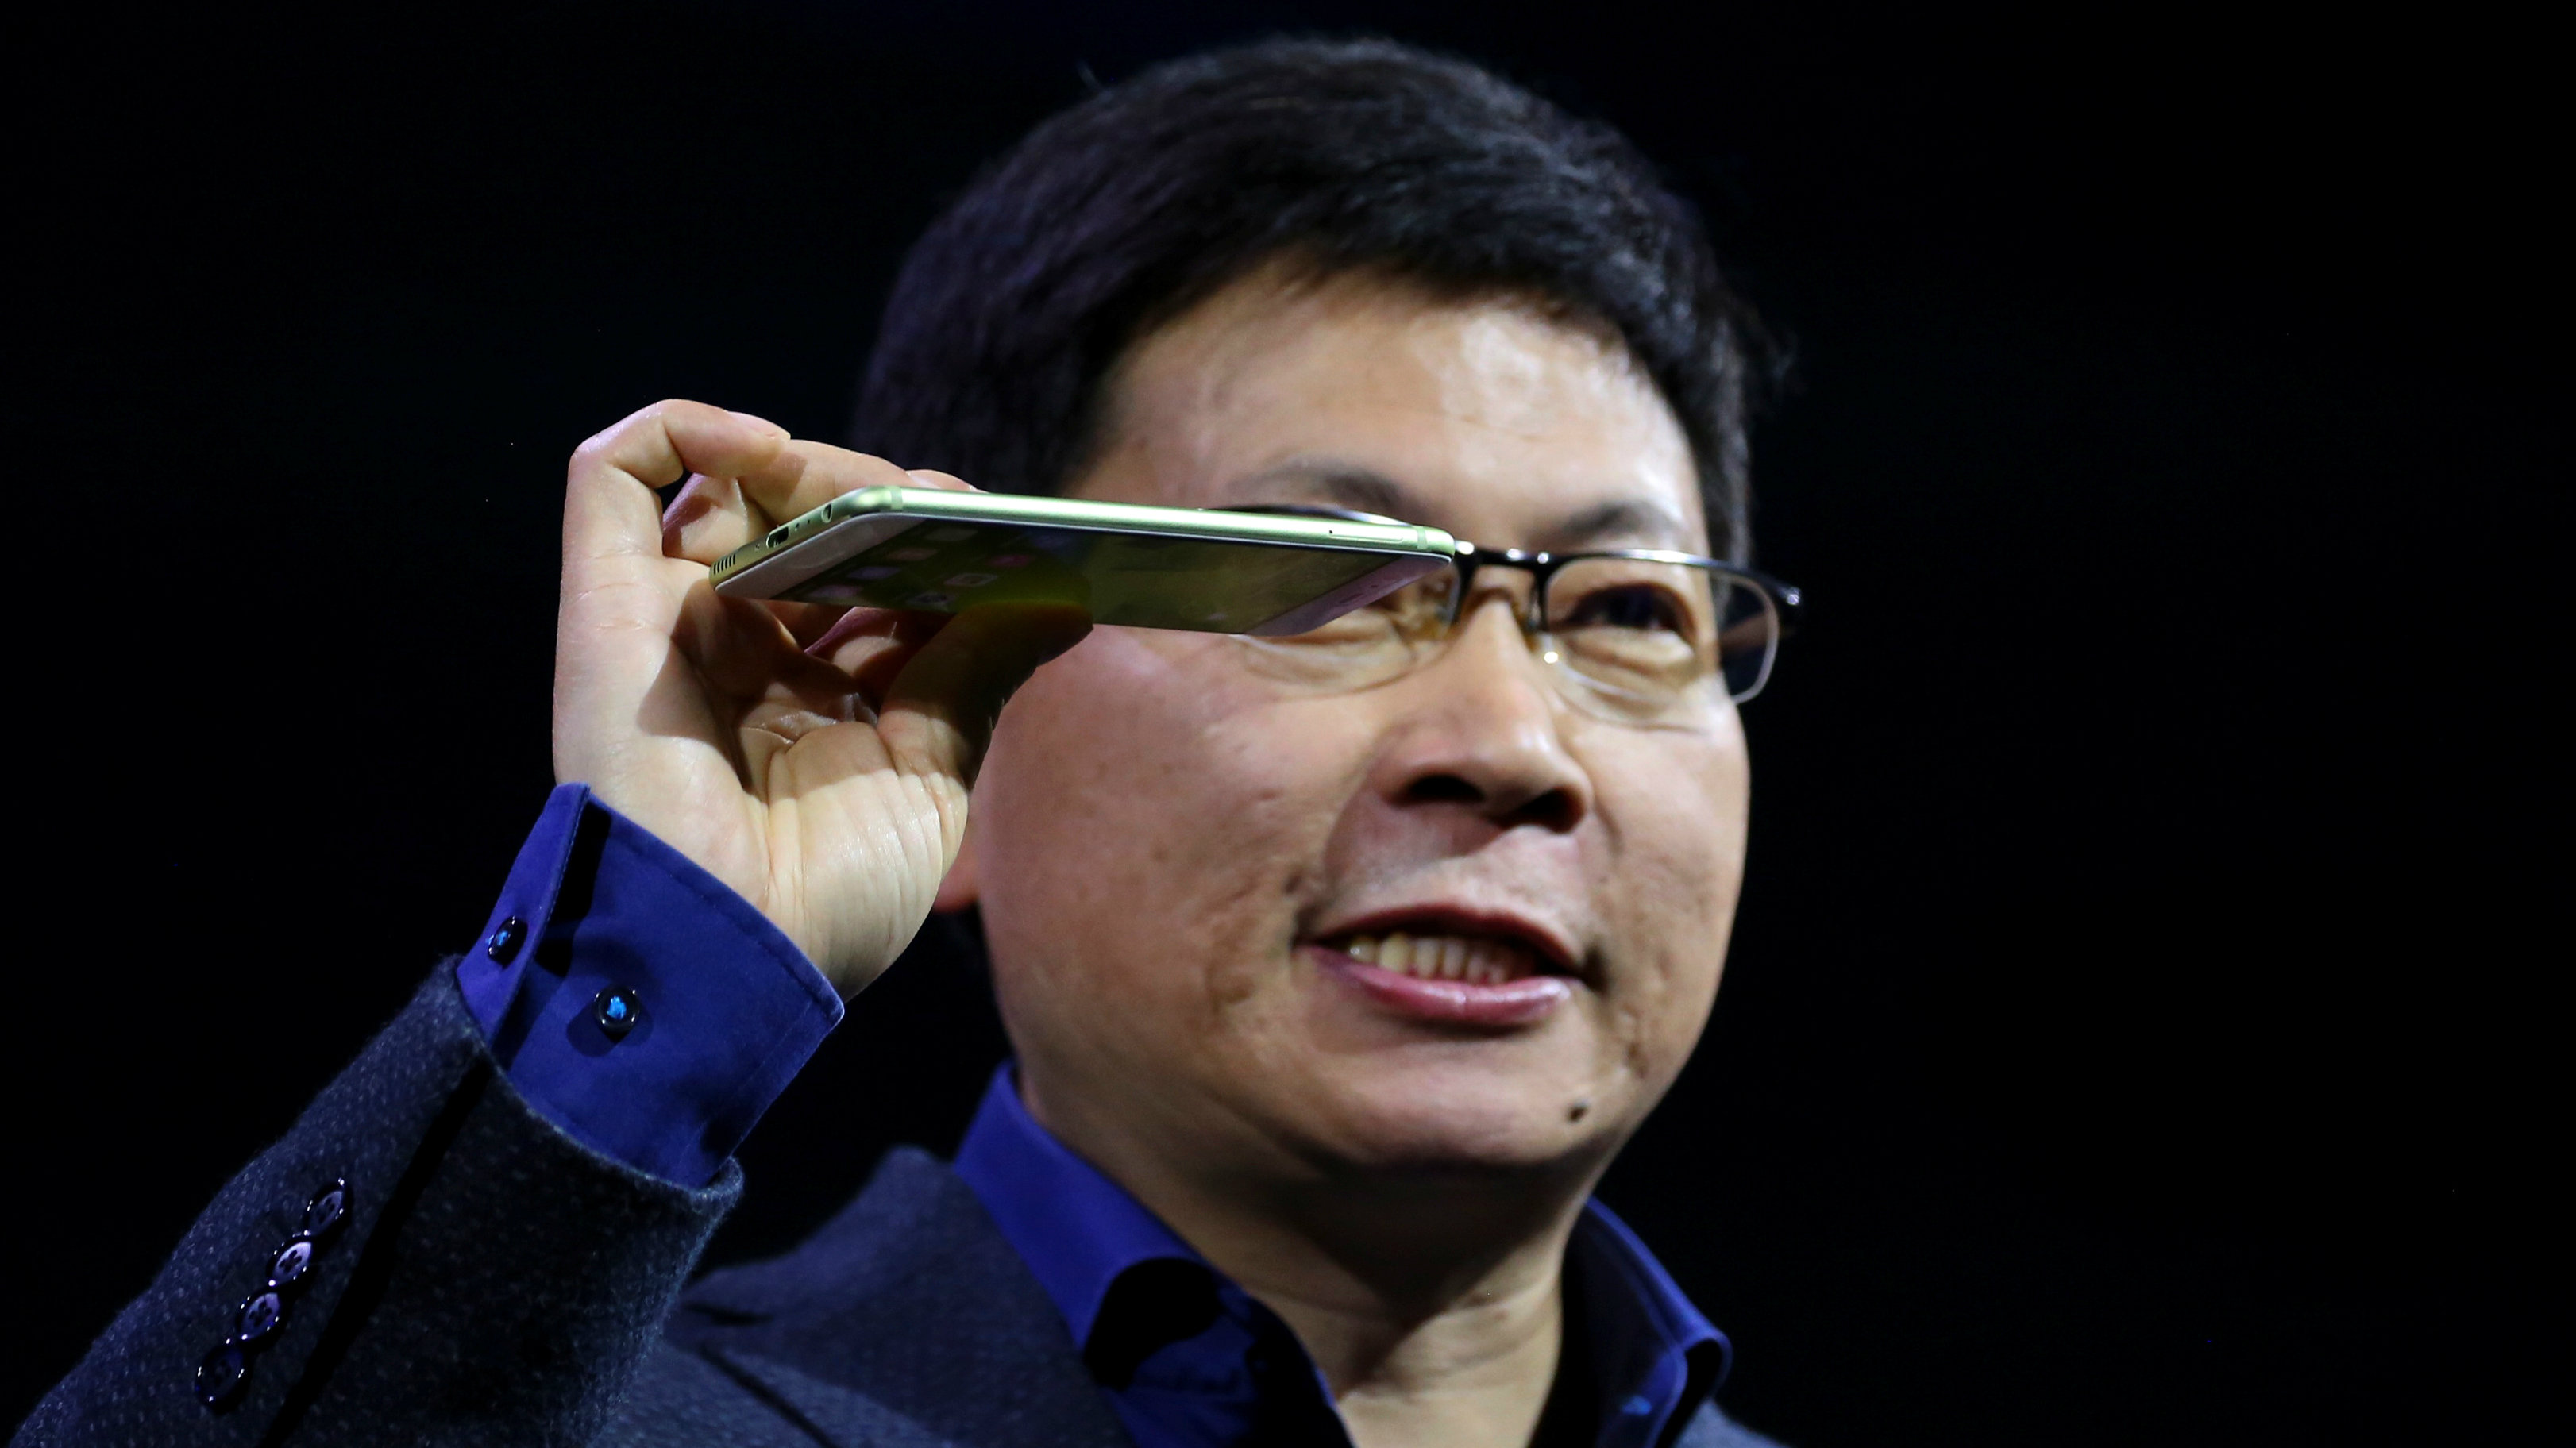 Richard Yu, chief executive of Huawei's consumer business, holds up the new P10 Plus device during a presentation ceremony at Mobile World Congress in Barcelona, Spain, February 26, 2017